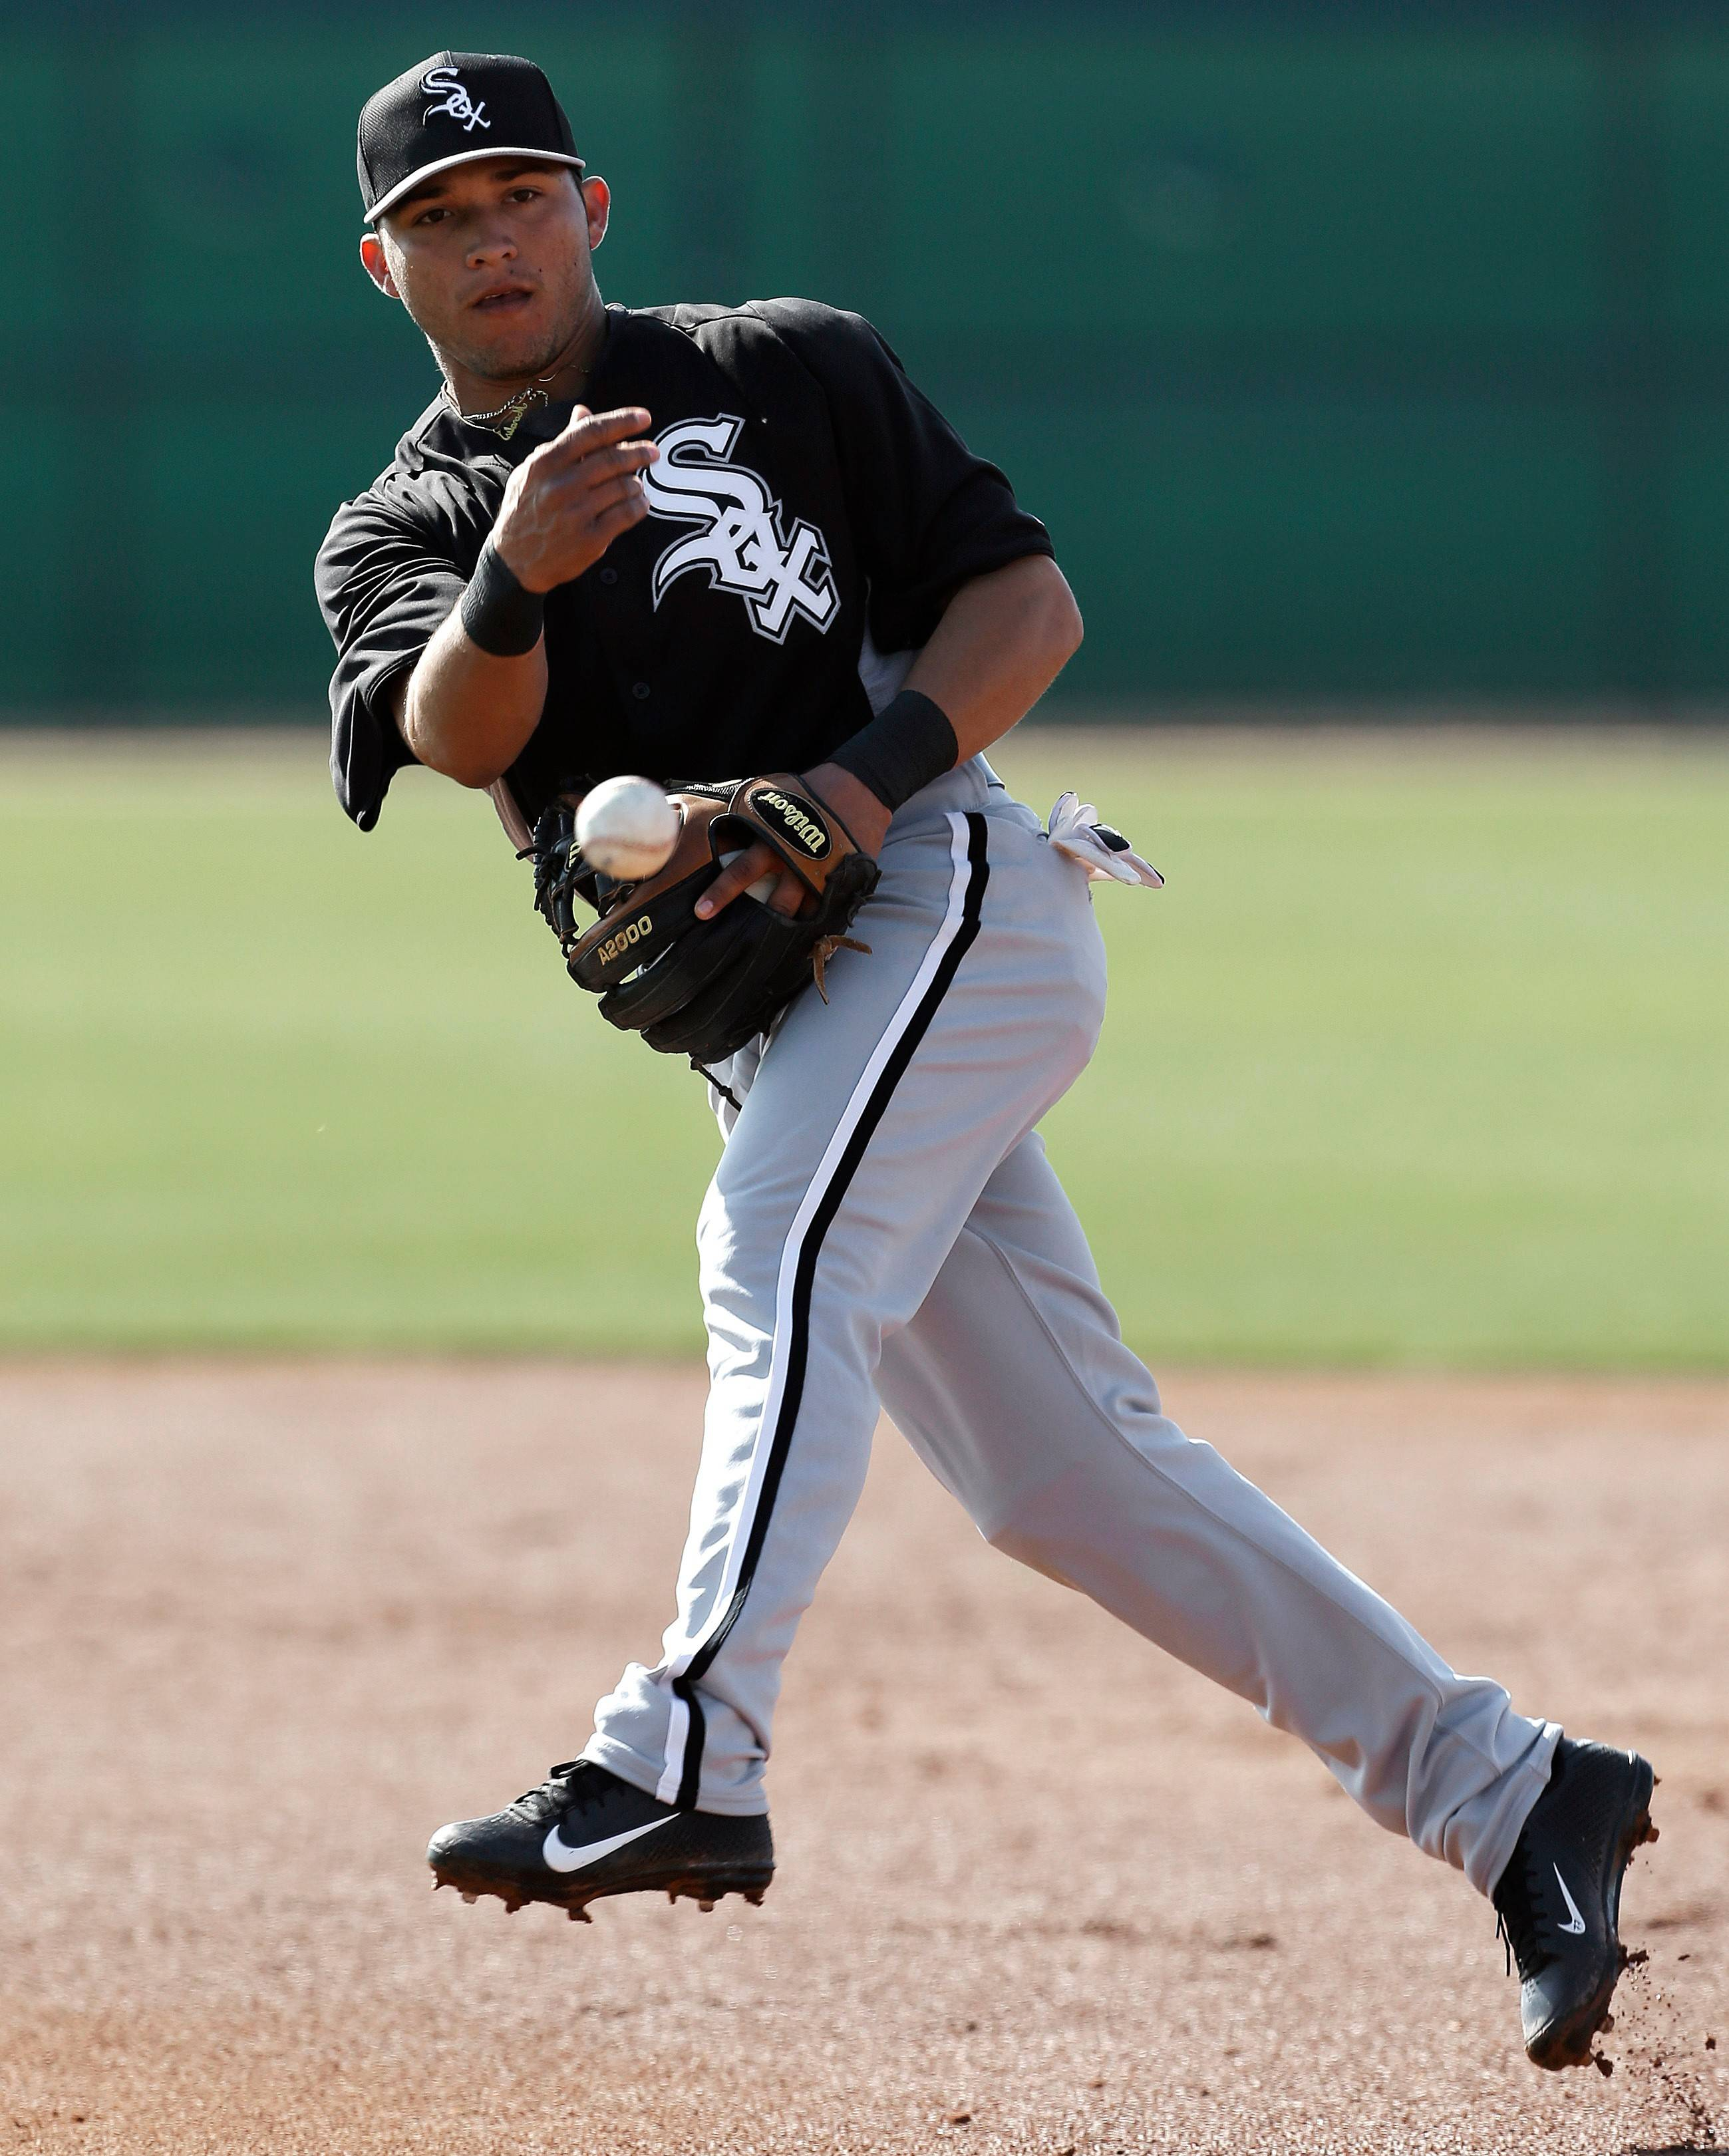 The White Sox Carlos Sanchez has taken over for Gordon Beckham at second base after Beckham was traded to the Los Angeles Angels last week.